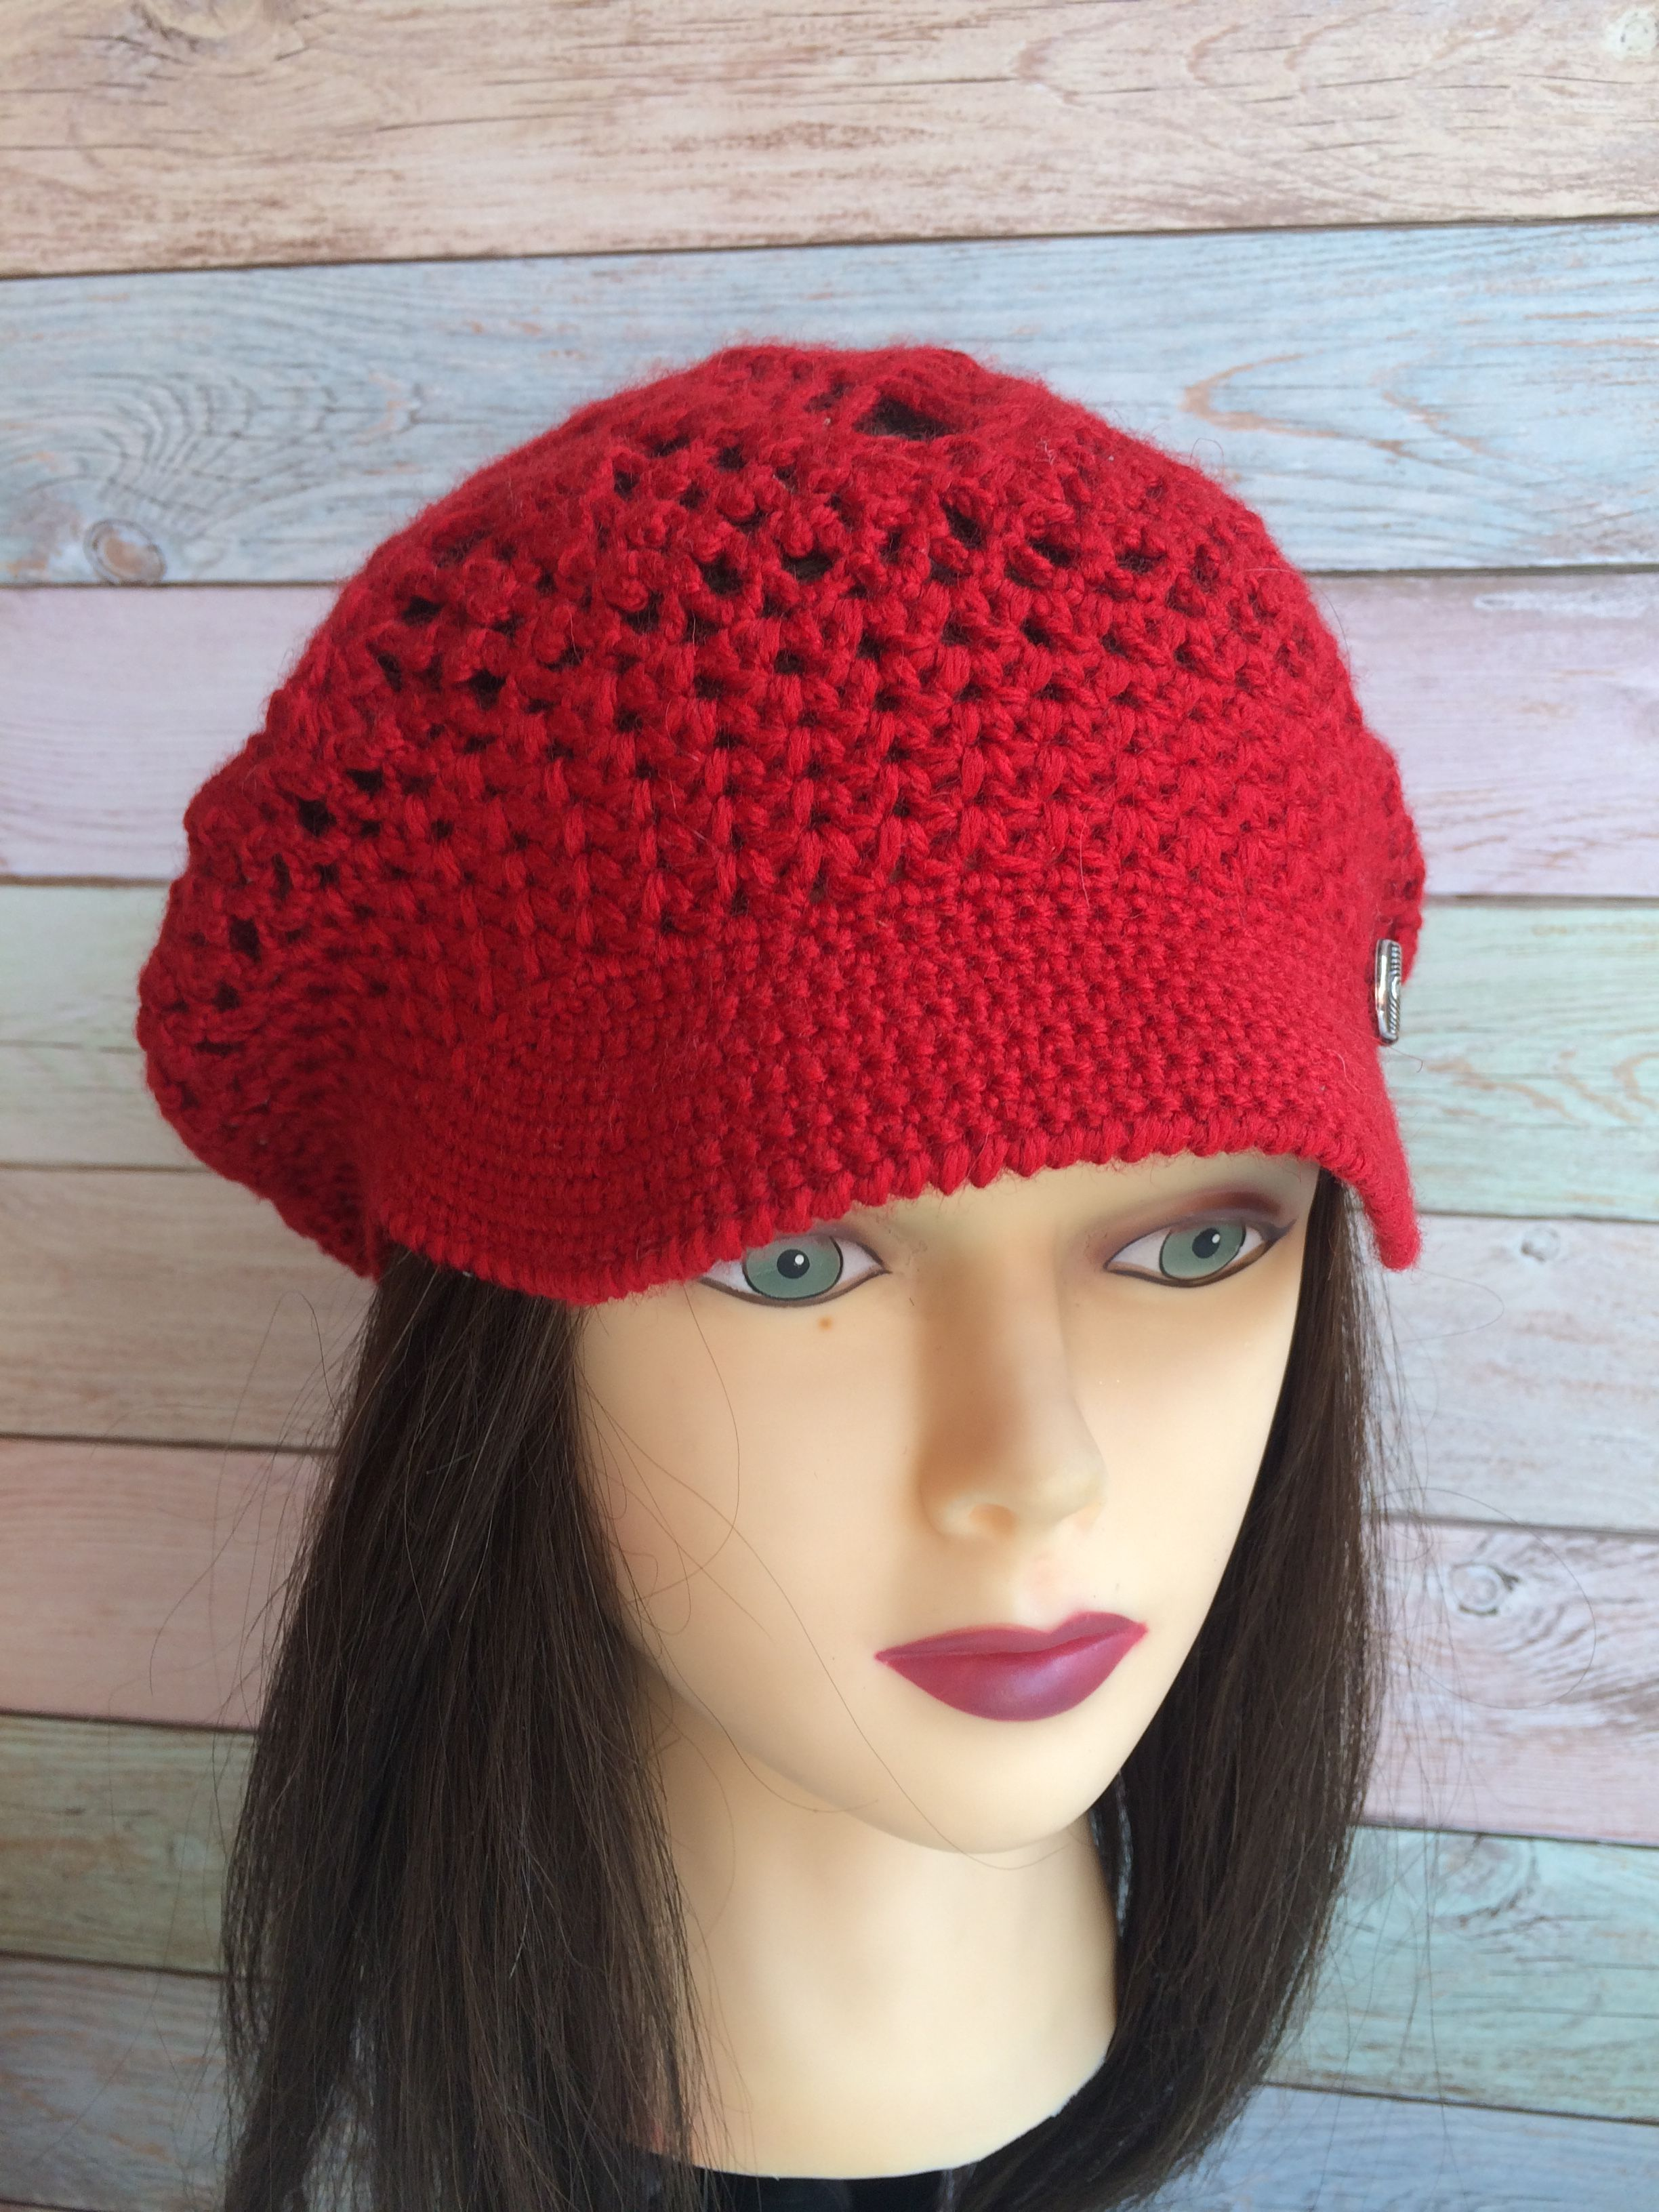 Crochet Brim Cap Beret with a visor Textured Mesh Slouchy Cap all ... 0956628a693c